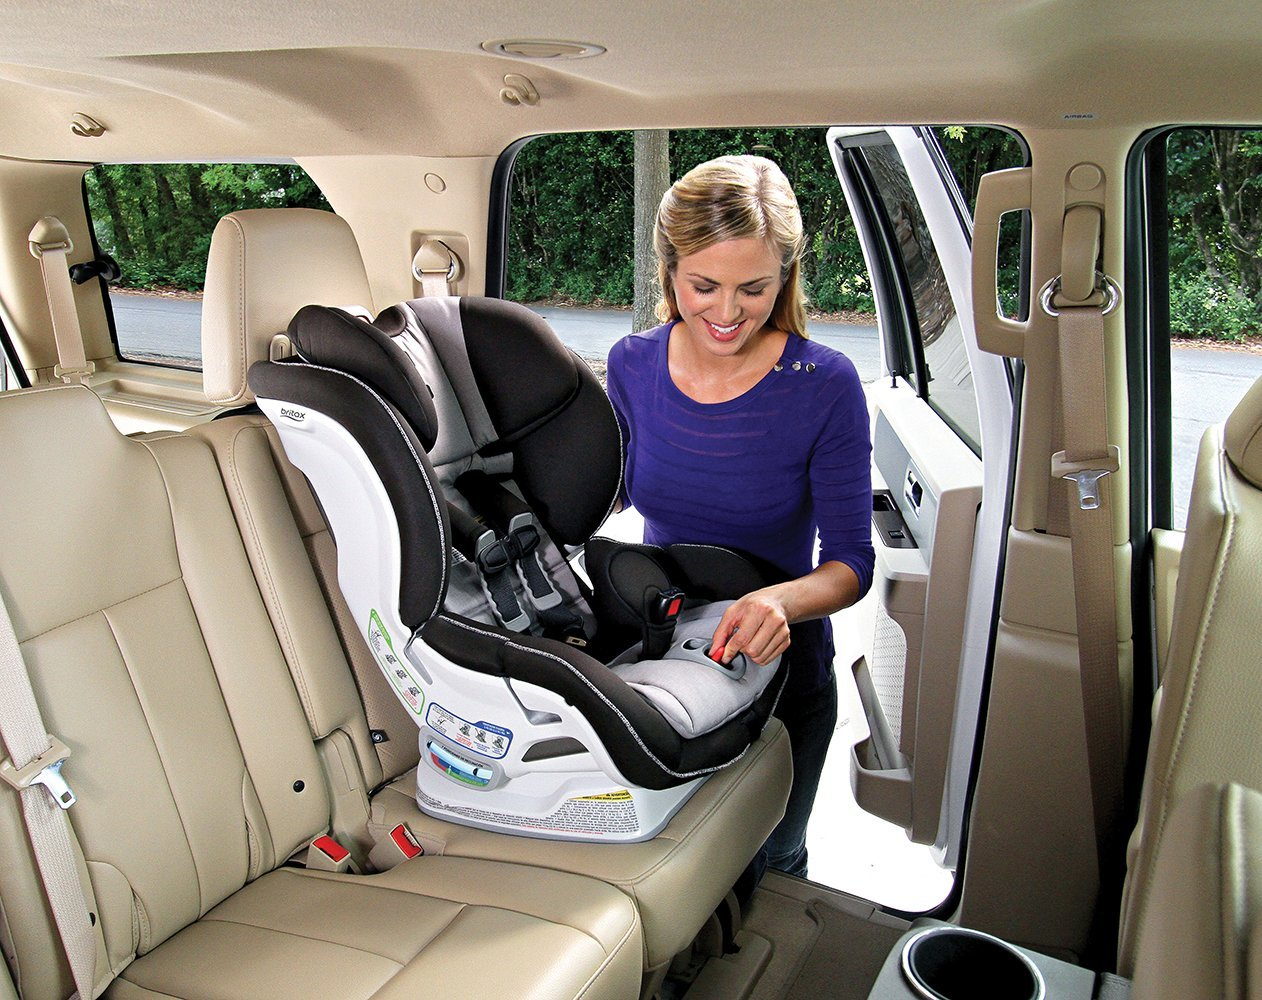 5 Common Car Seat Mistakes Most Parents Make—& How to Avoid Them